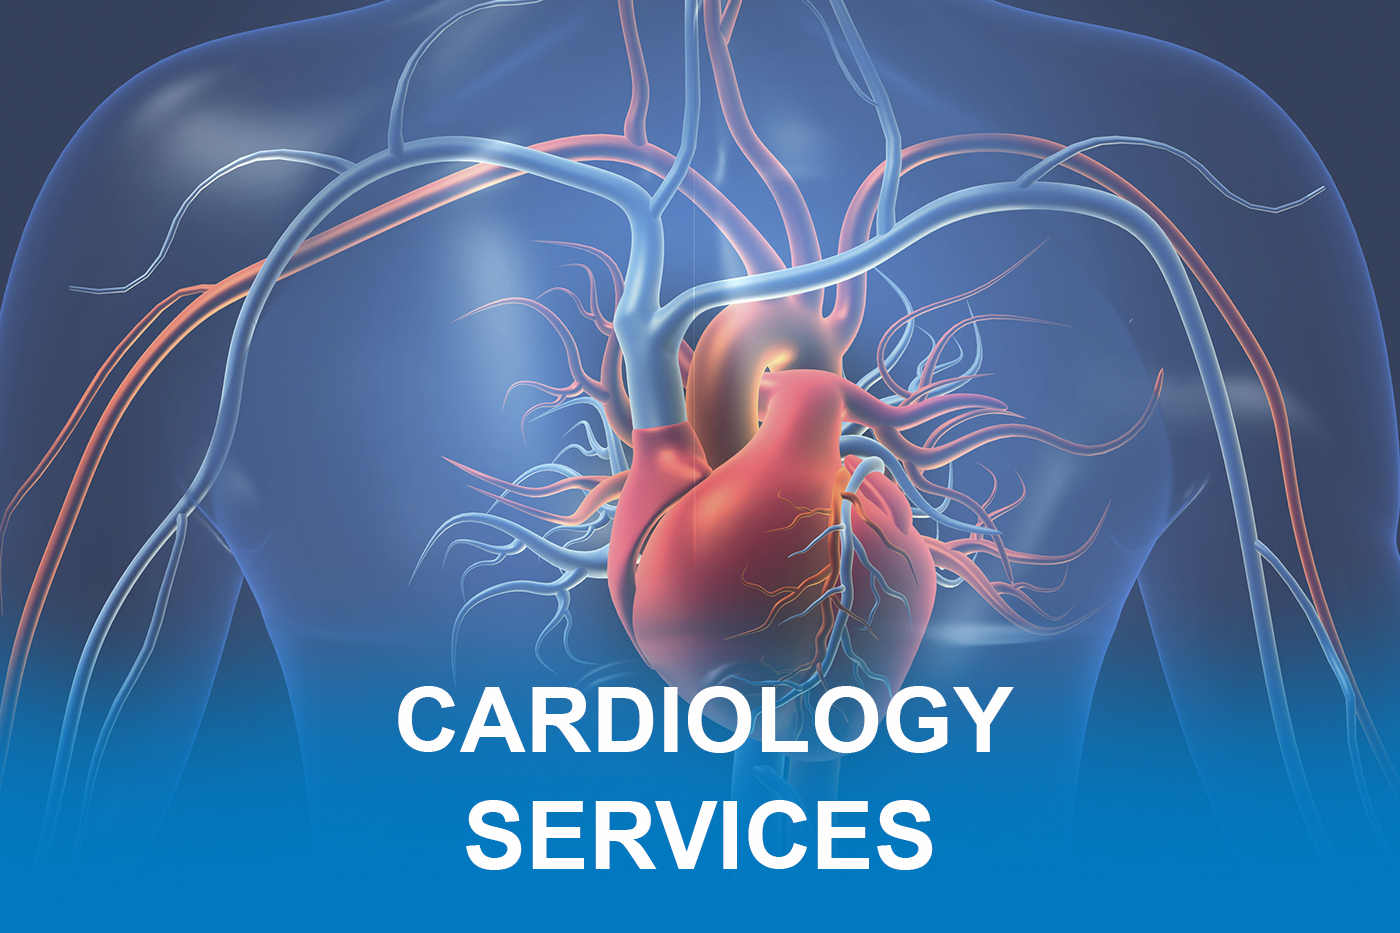 Cardiology Services